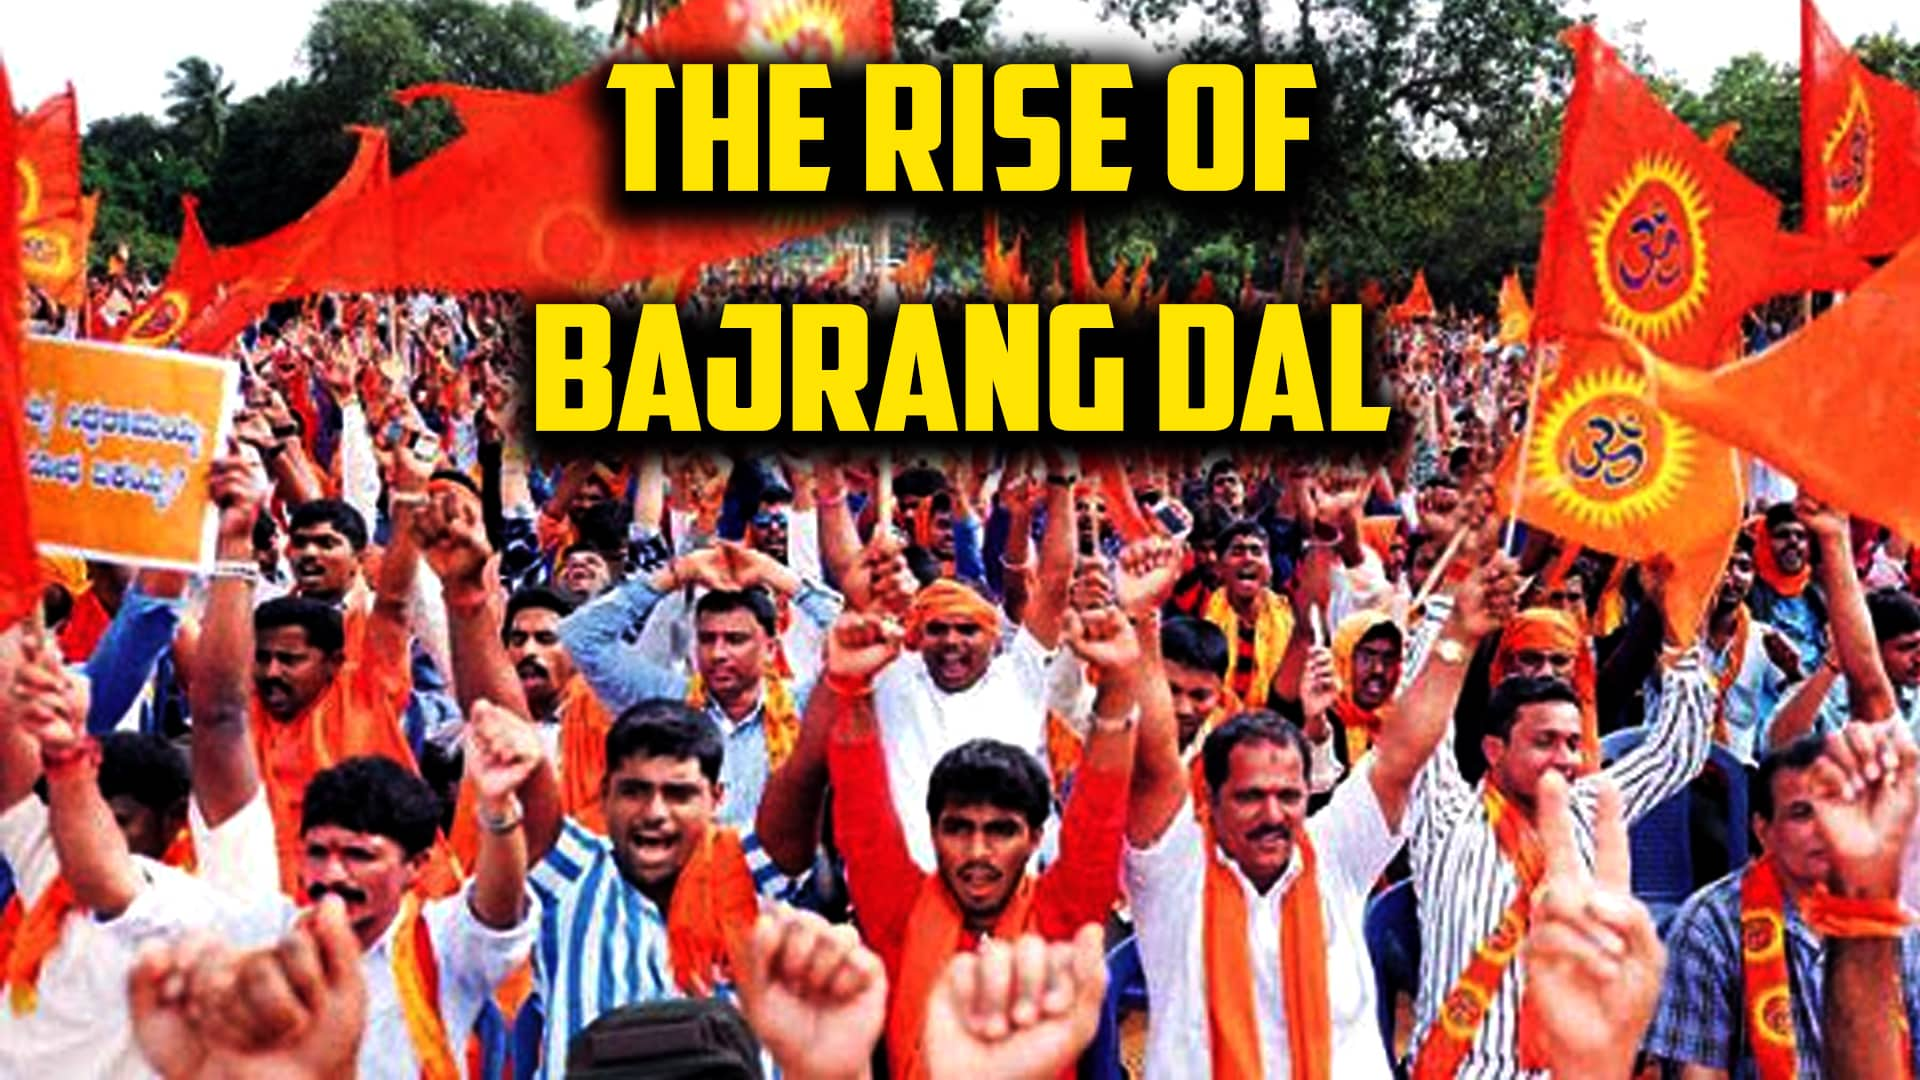 Karnataka elections 2018: The rise and growth of Bajrang Dal in the state